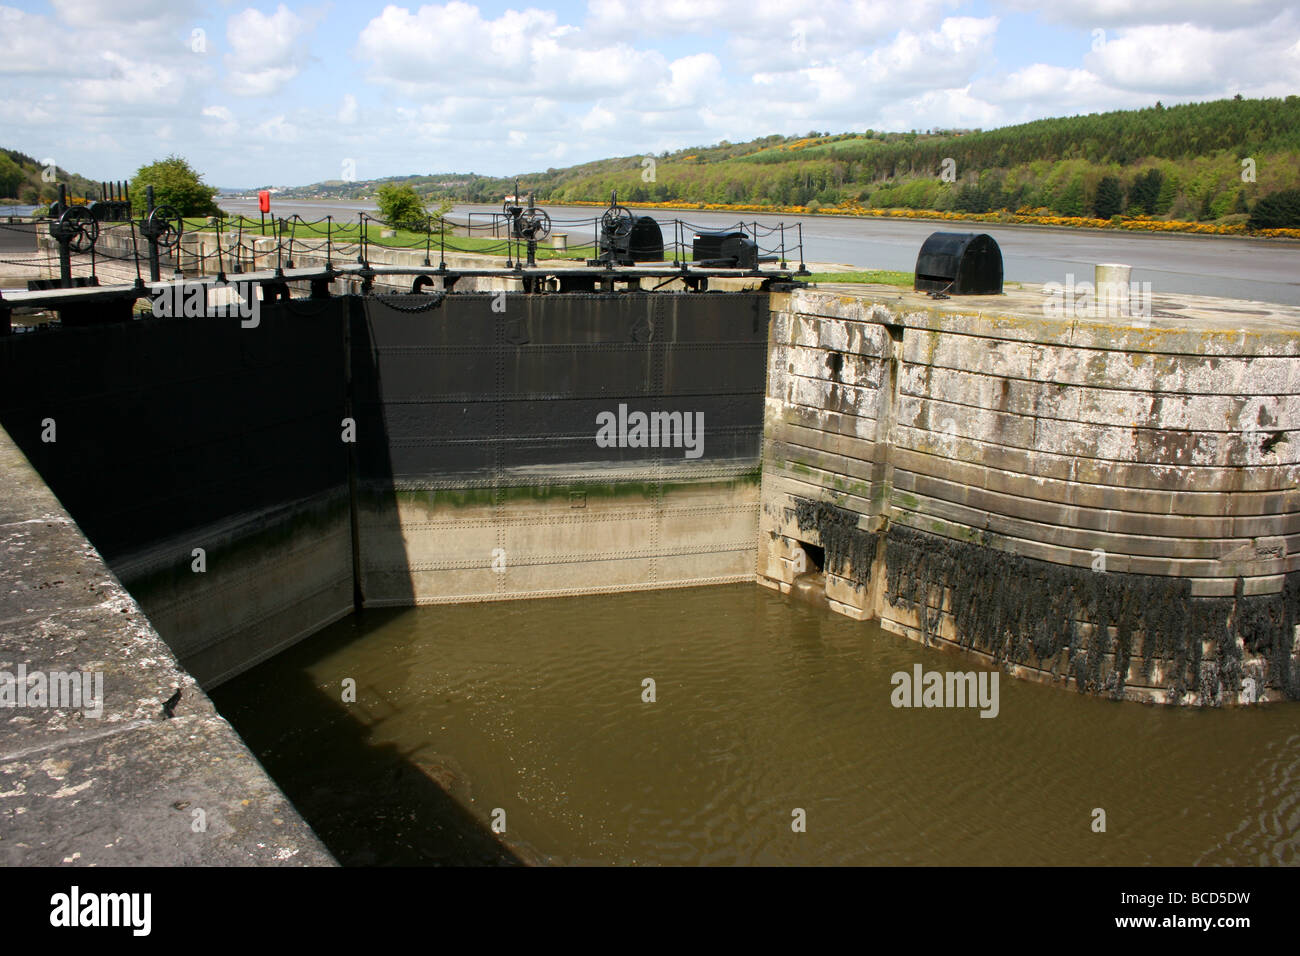 Victoria Lock, by the Newry Canal, Ireland - Stock Image